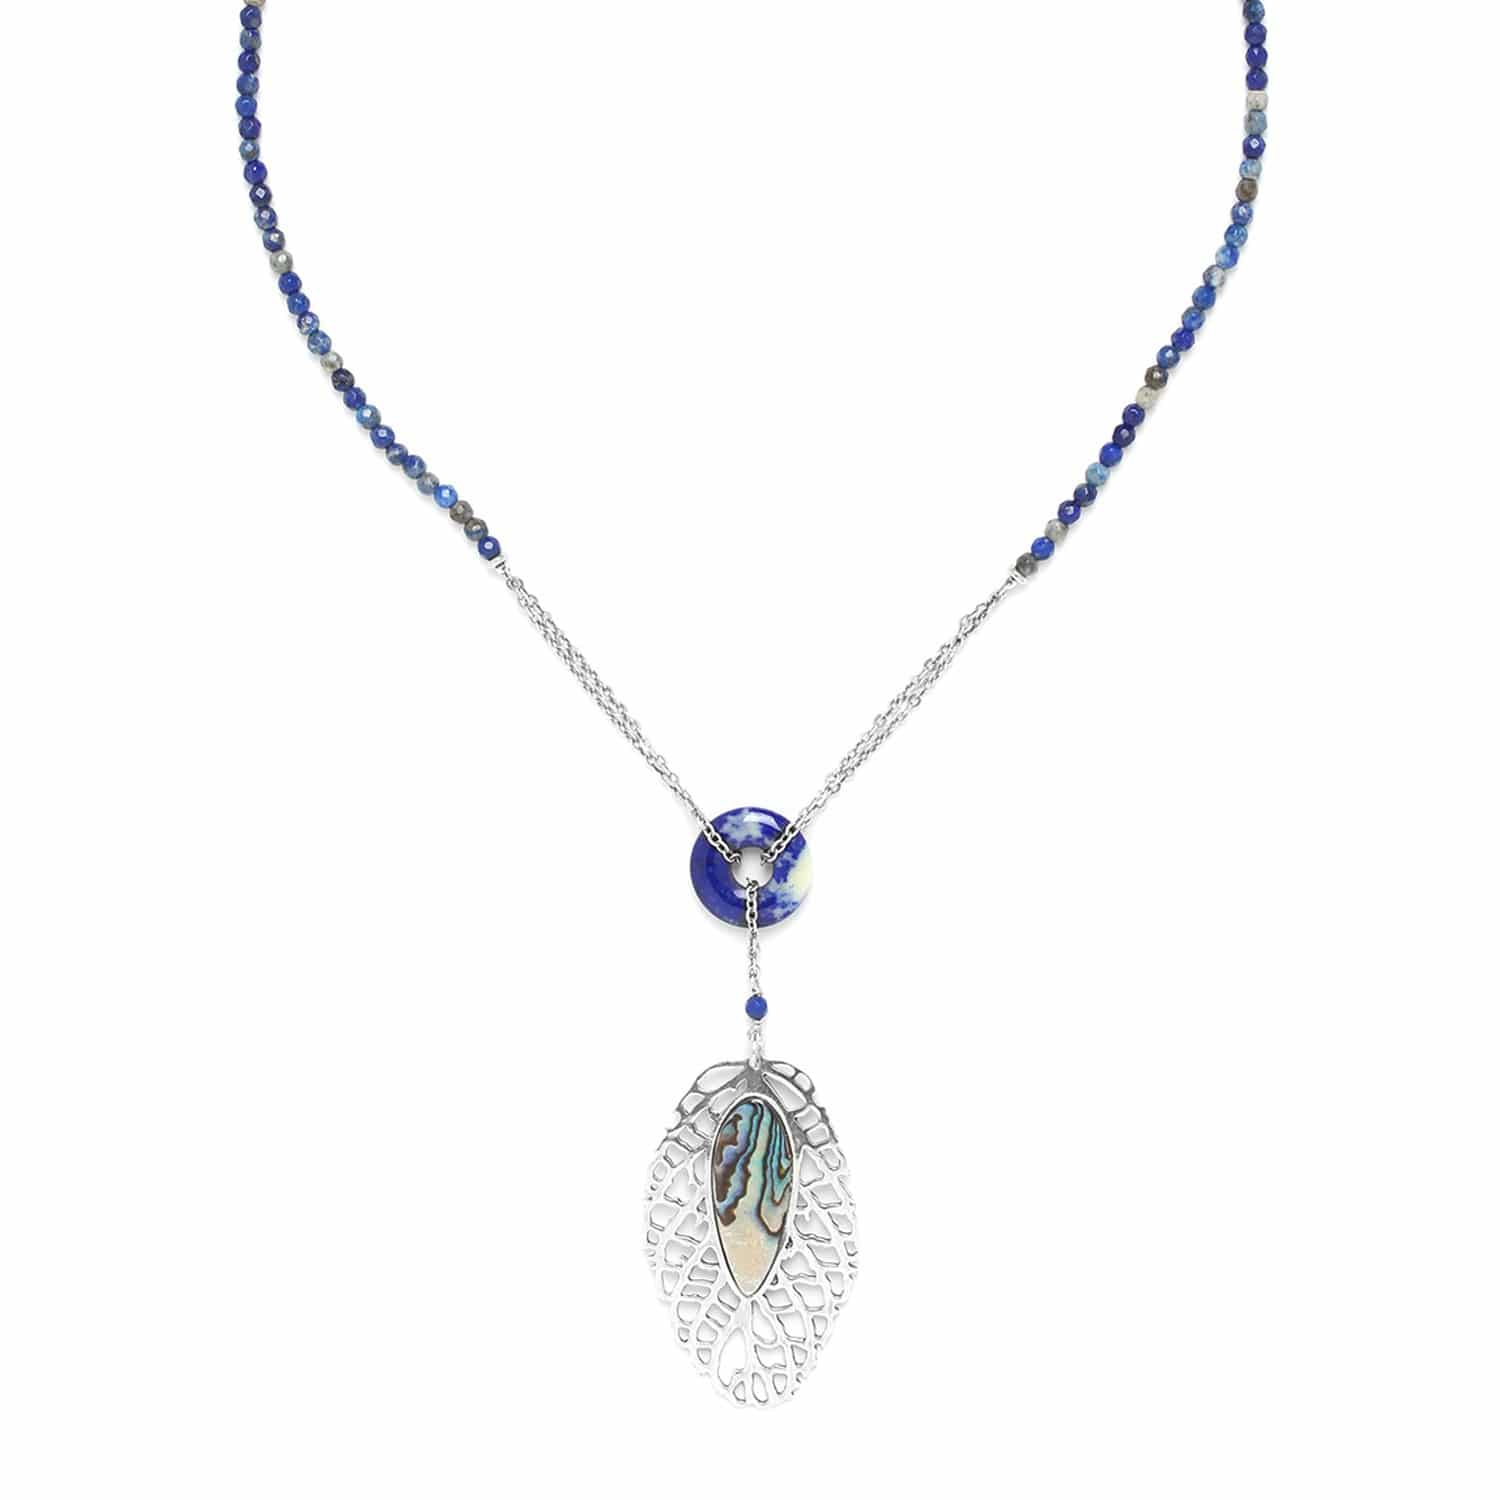 FITTONIA lapis lazuli necklace with leaf